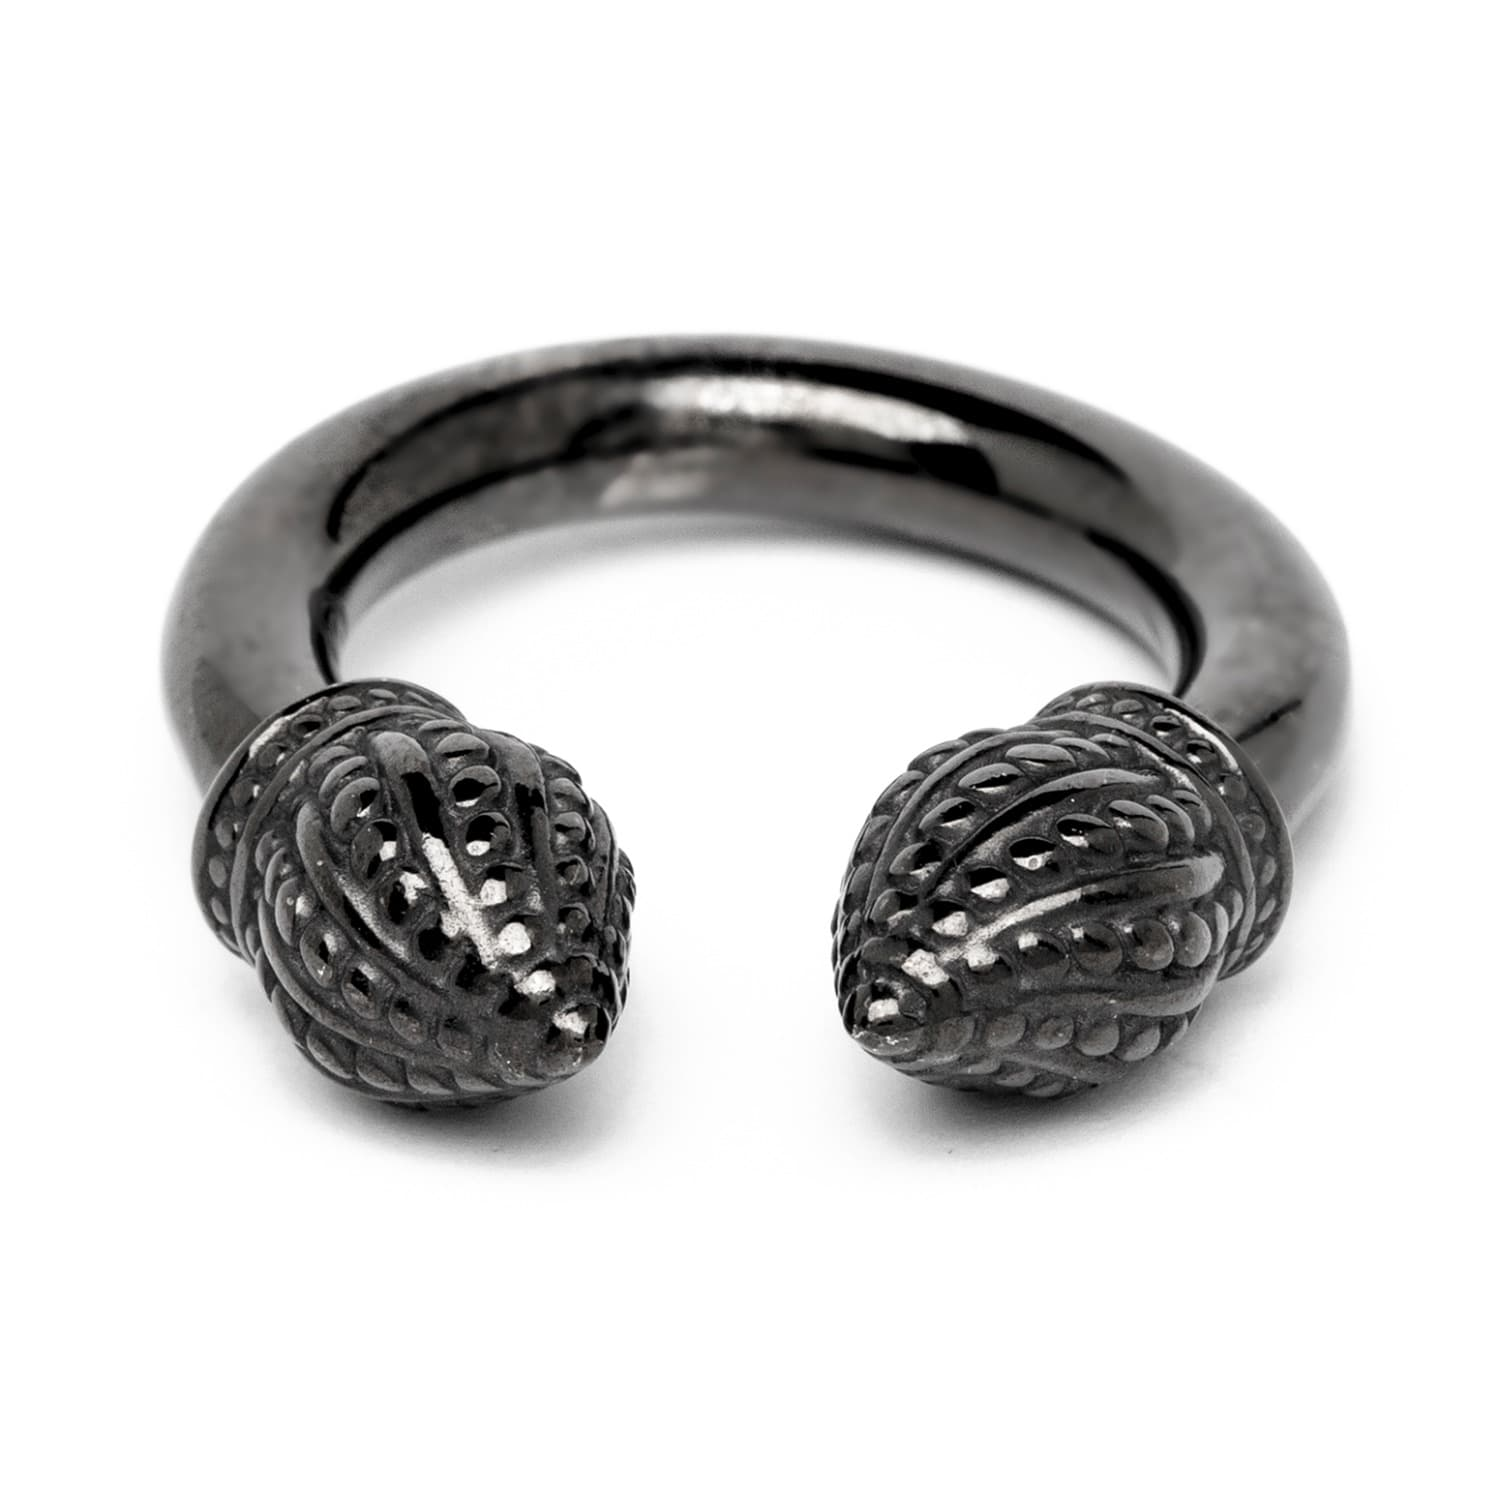 Graphite Cylinder Ring by Durrah Jewelry